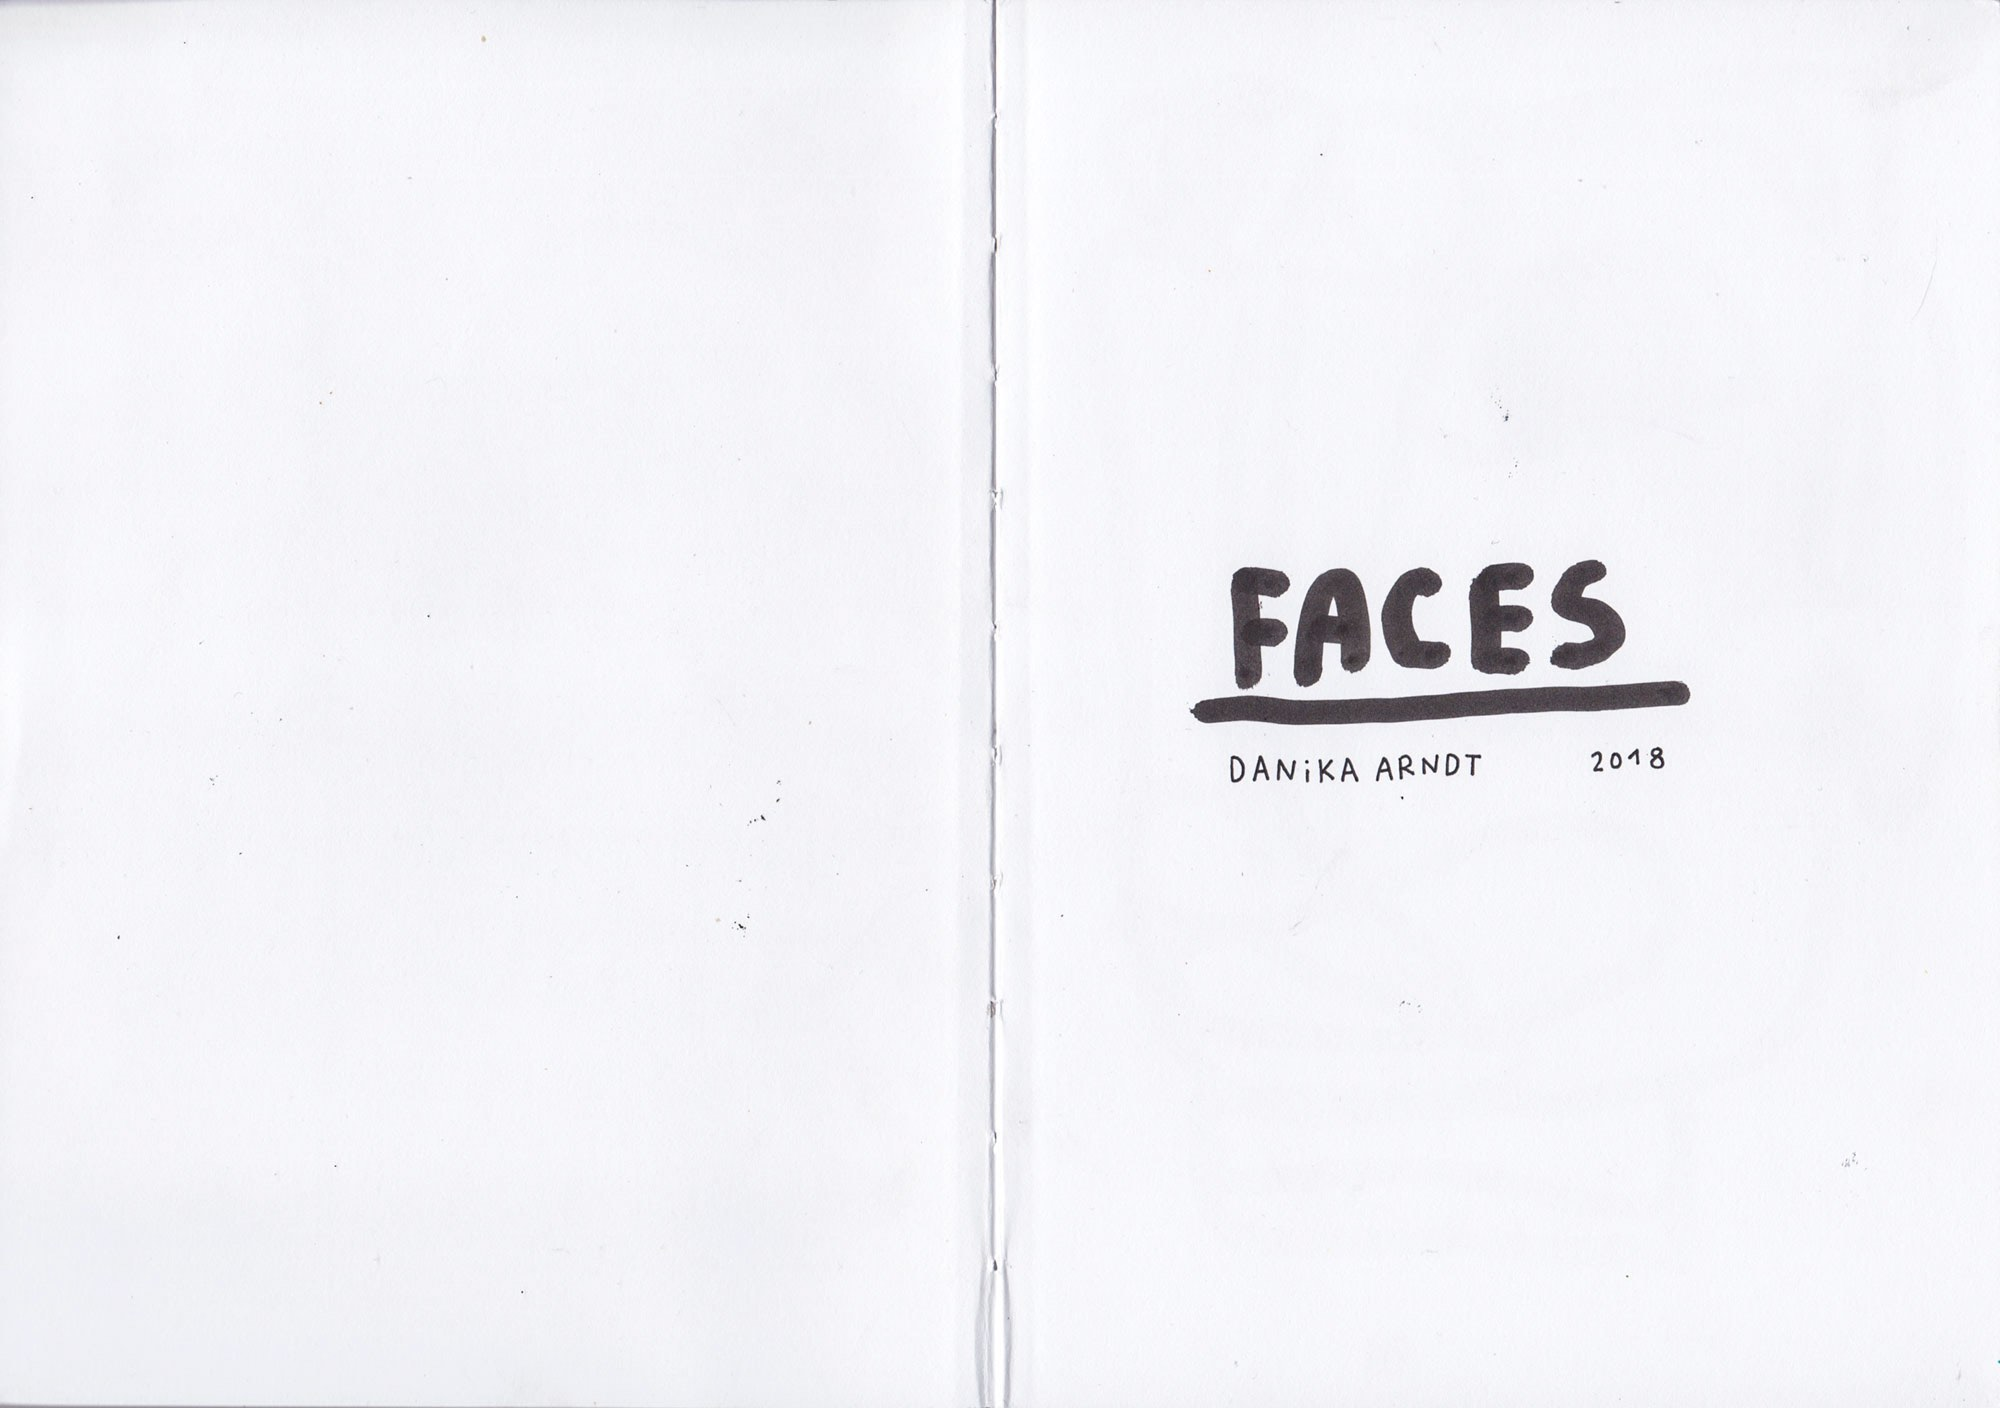 18-Scan-Book-FACES-DA-1_b